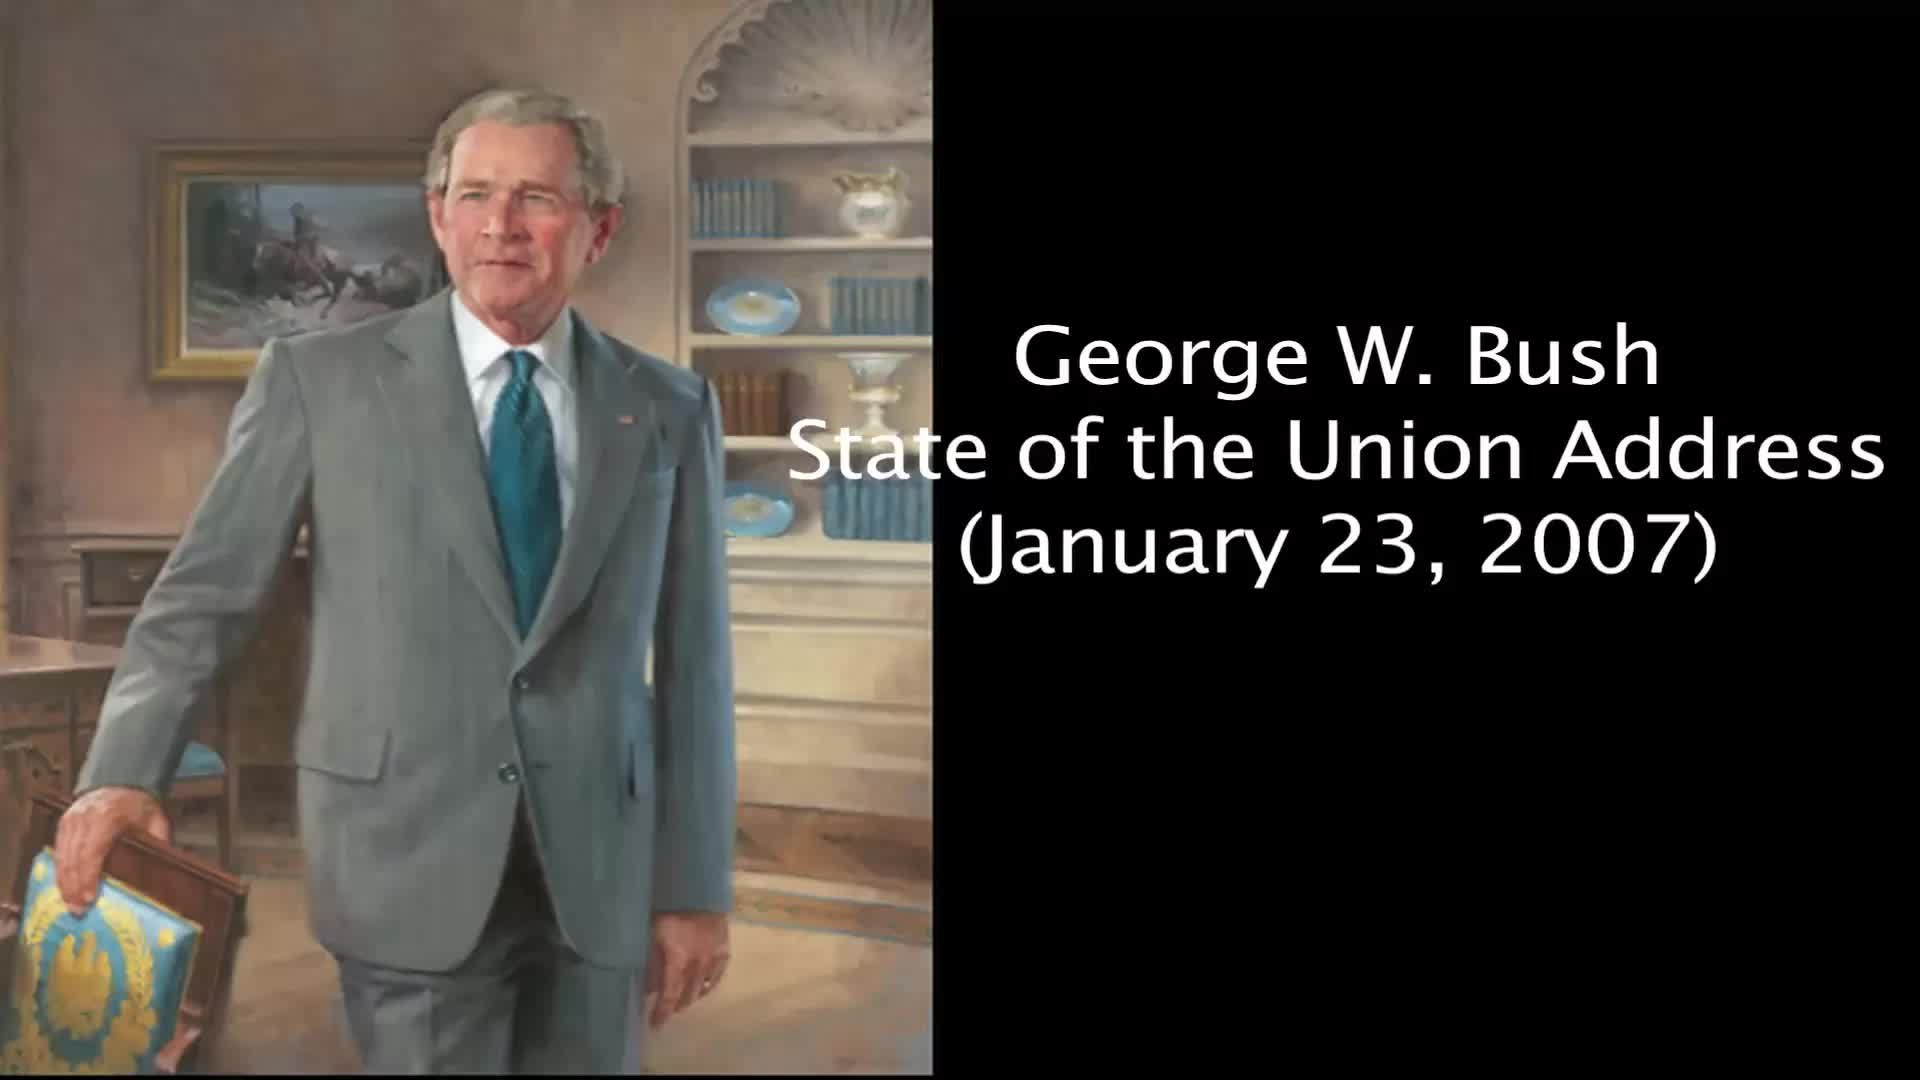 State Of Union Jan 23 2007 >> File 2007 George W Bush State Of The Union Address January 23